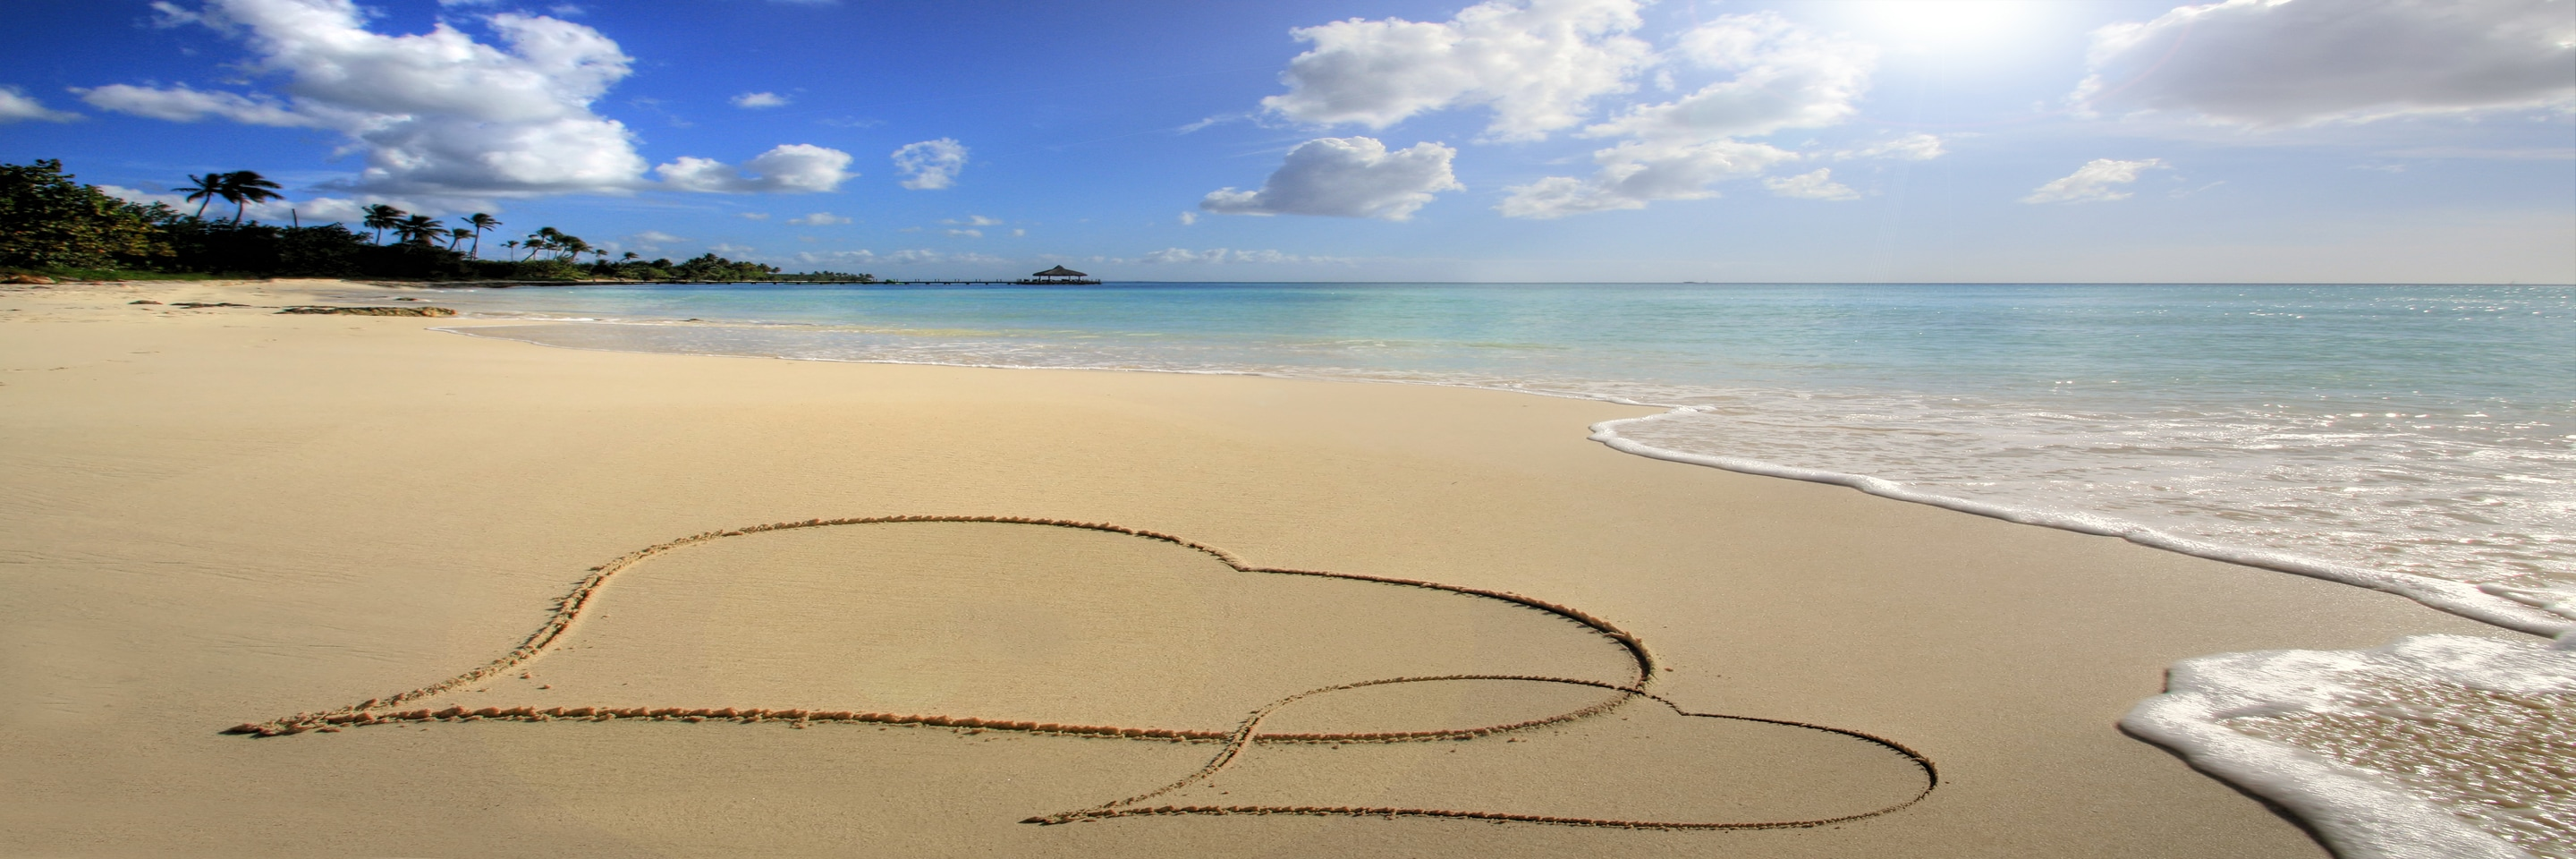 Two hearts drawn in the sand, on a deserted tropical beach with lapping waves.